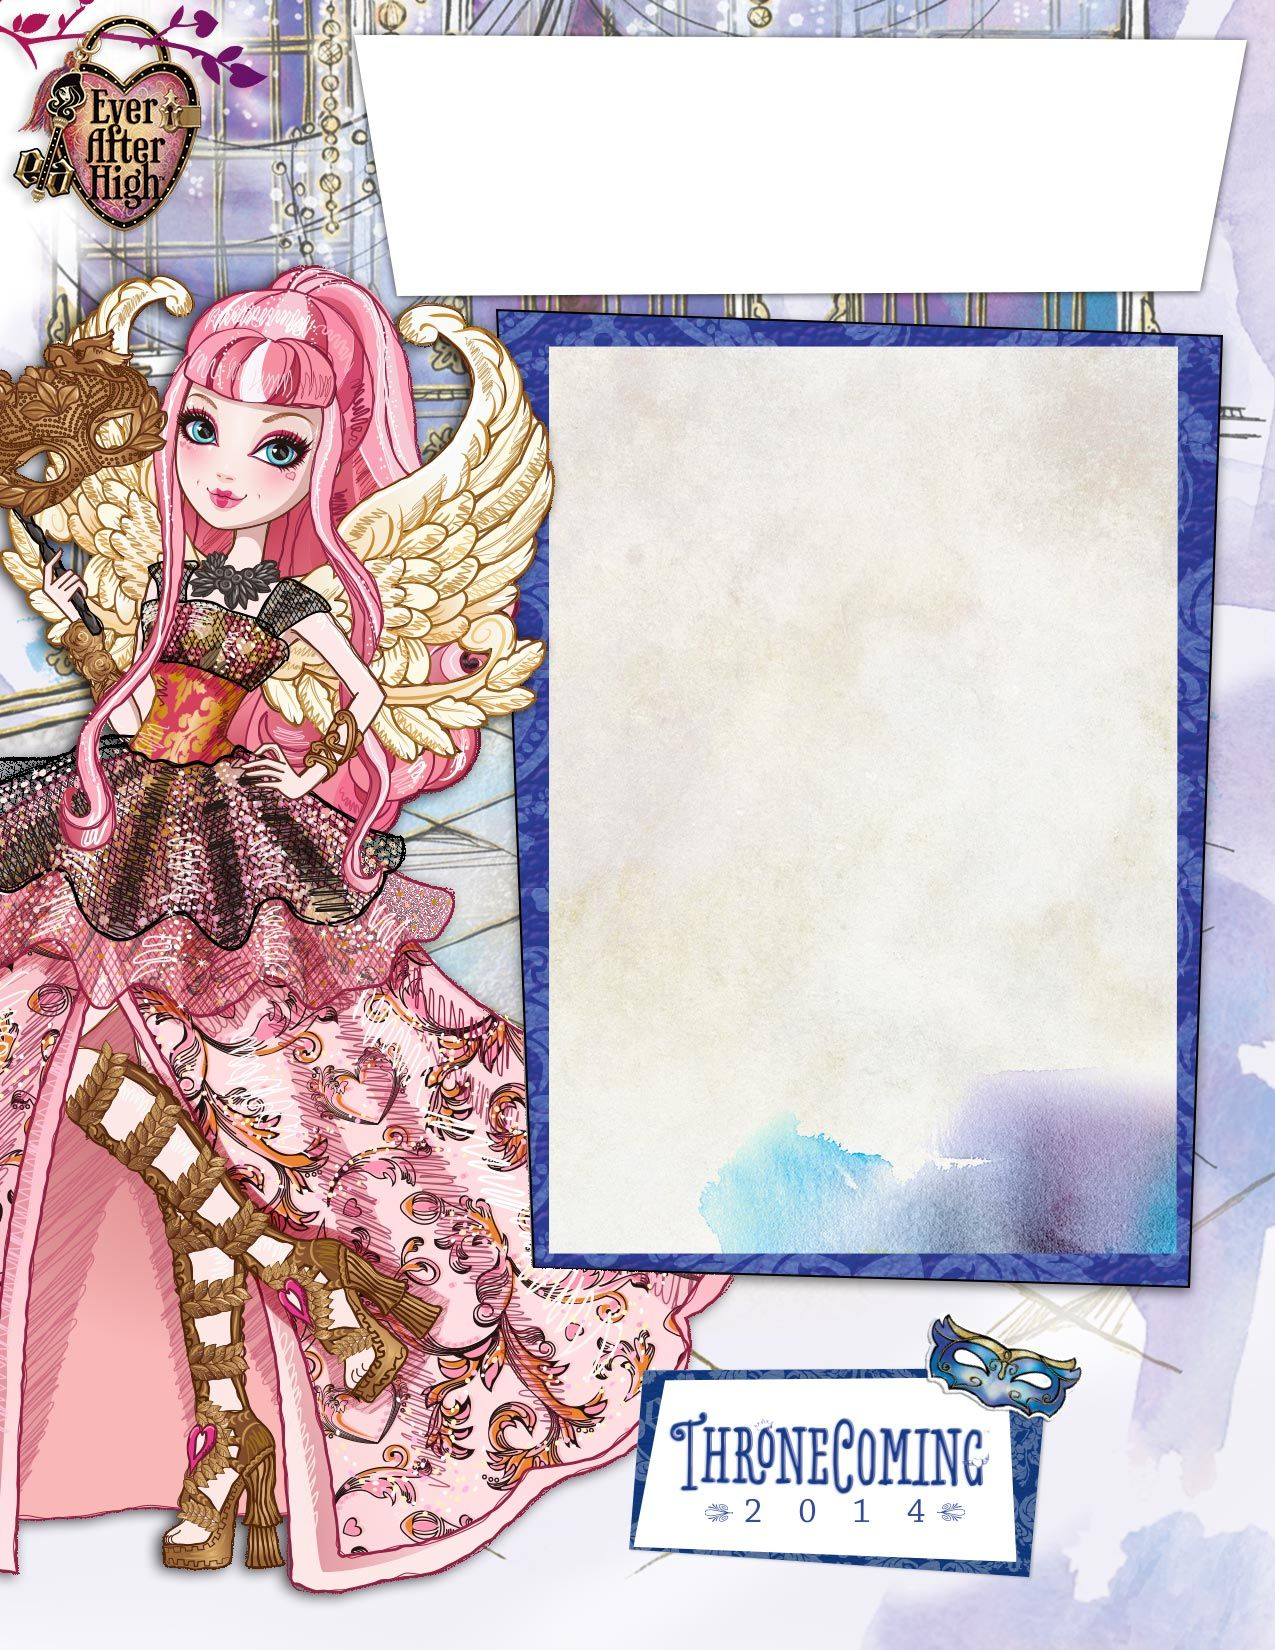 Thronecoming Quiz- Charming Quizzes & Activities for Kids | Ever After High